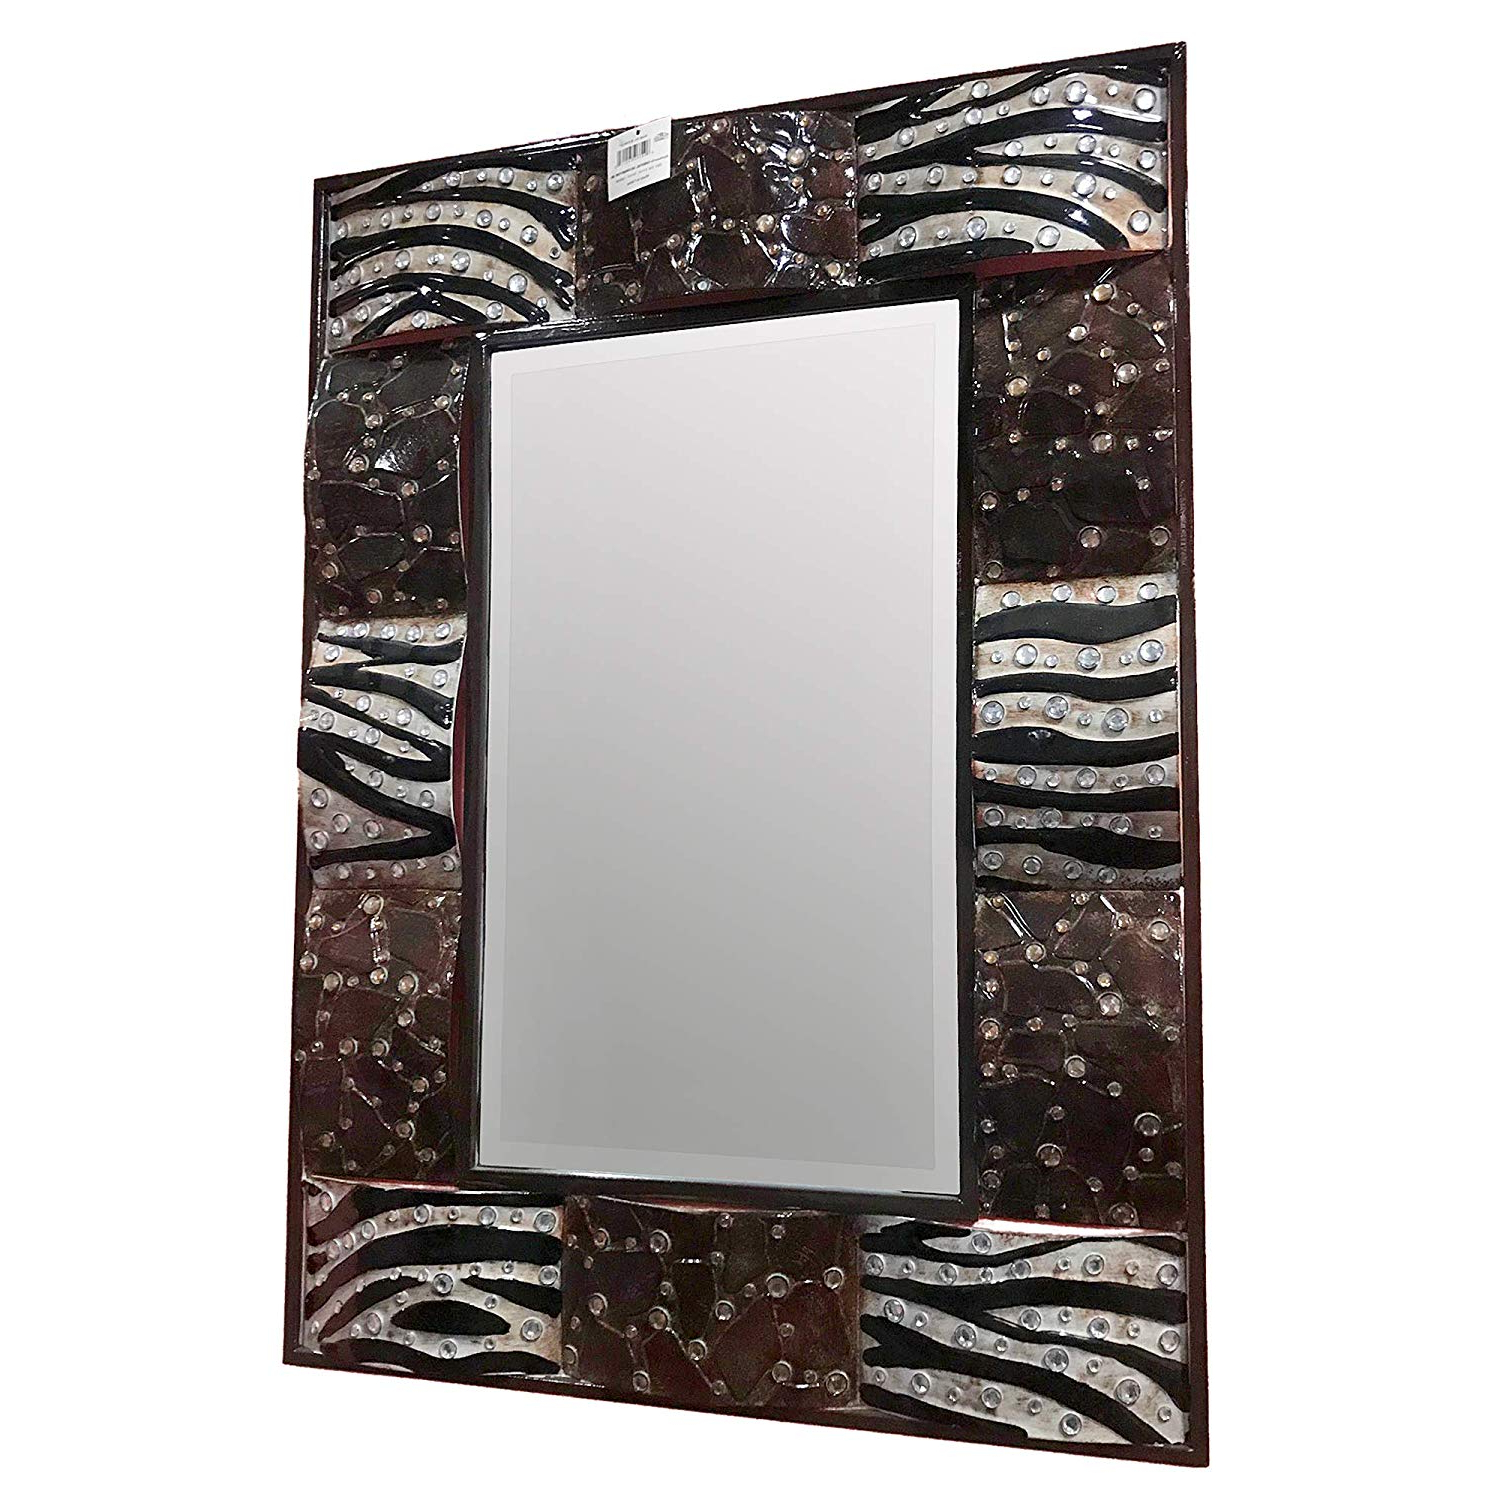 Preferred Amazon: Aspire Anima Print Metal Wall Mirror 36 Intended For Metal Wall Mirrors (View 15 of 20)